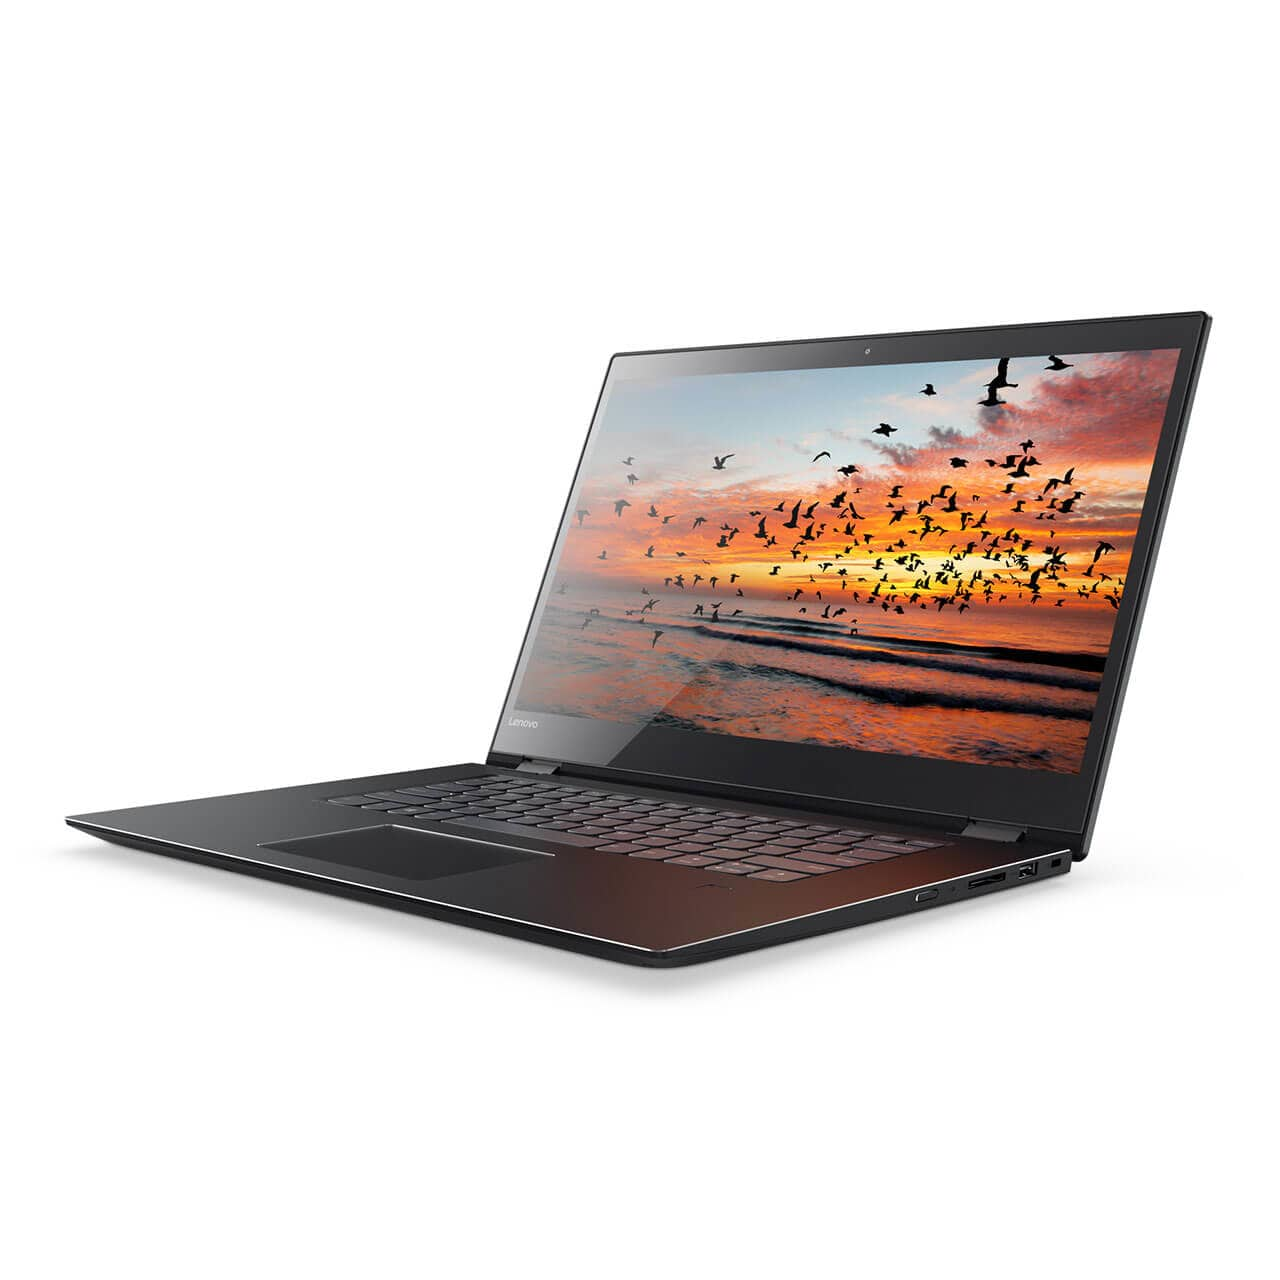 "Lenovo Flex 15 15.6"" FHD Convertible Laptop ( i7 / 16GB / 512GB SSD)"